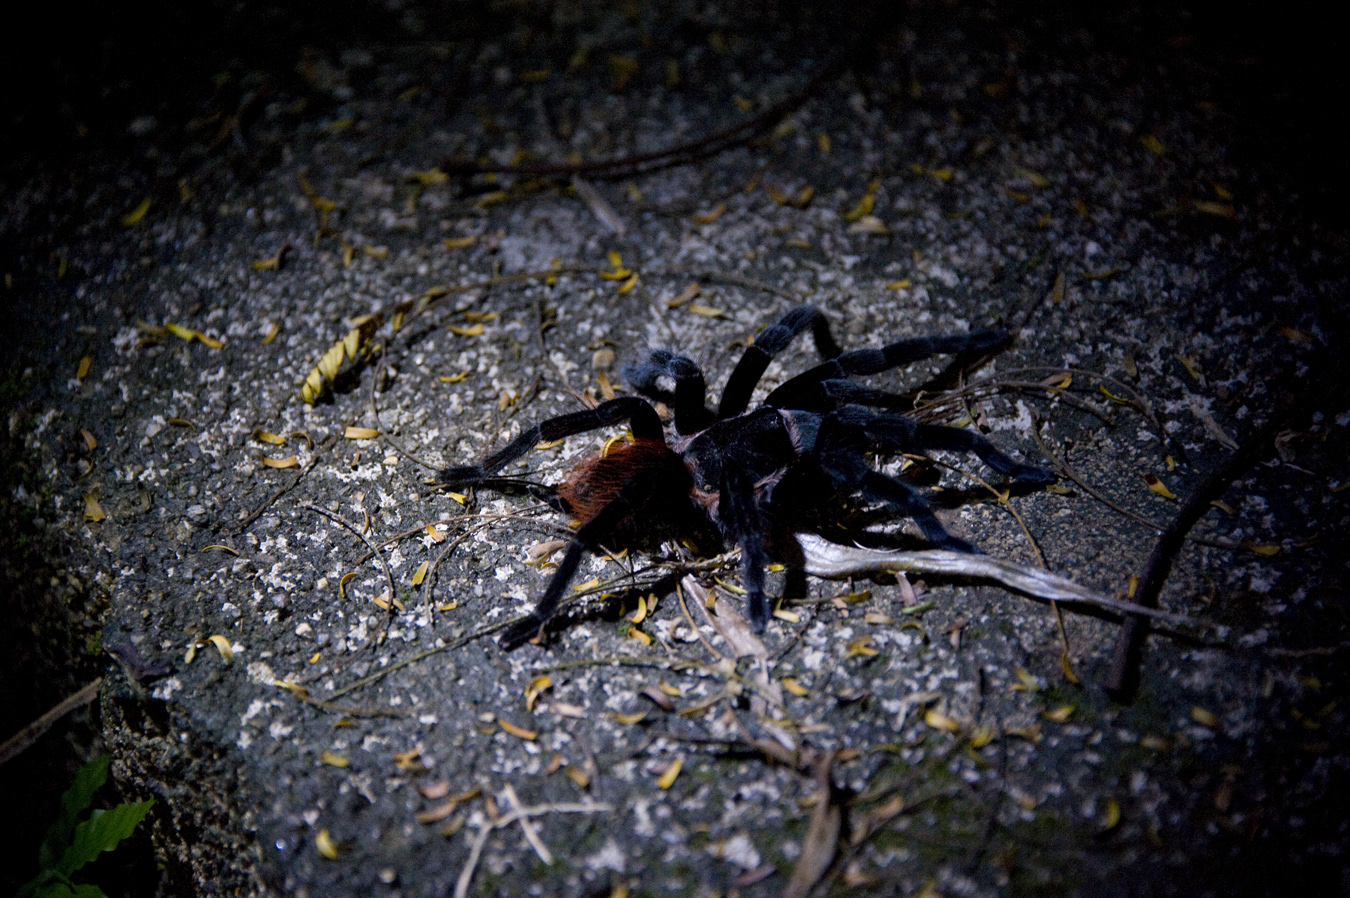 a spiders lust